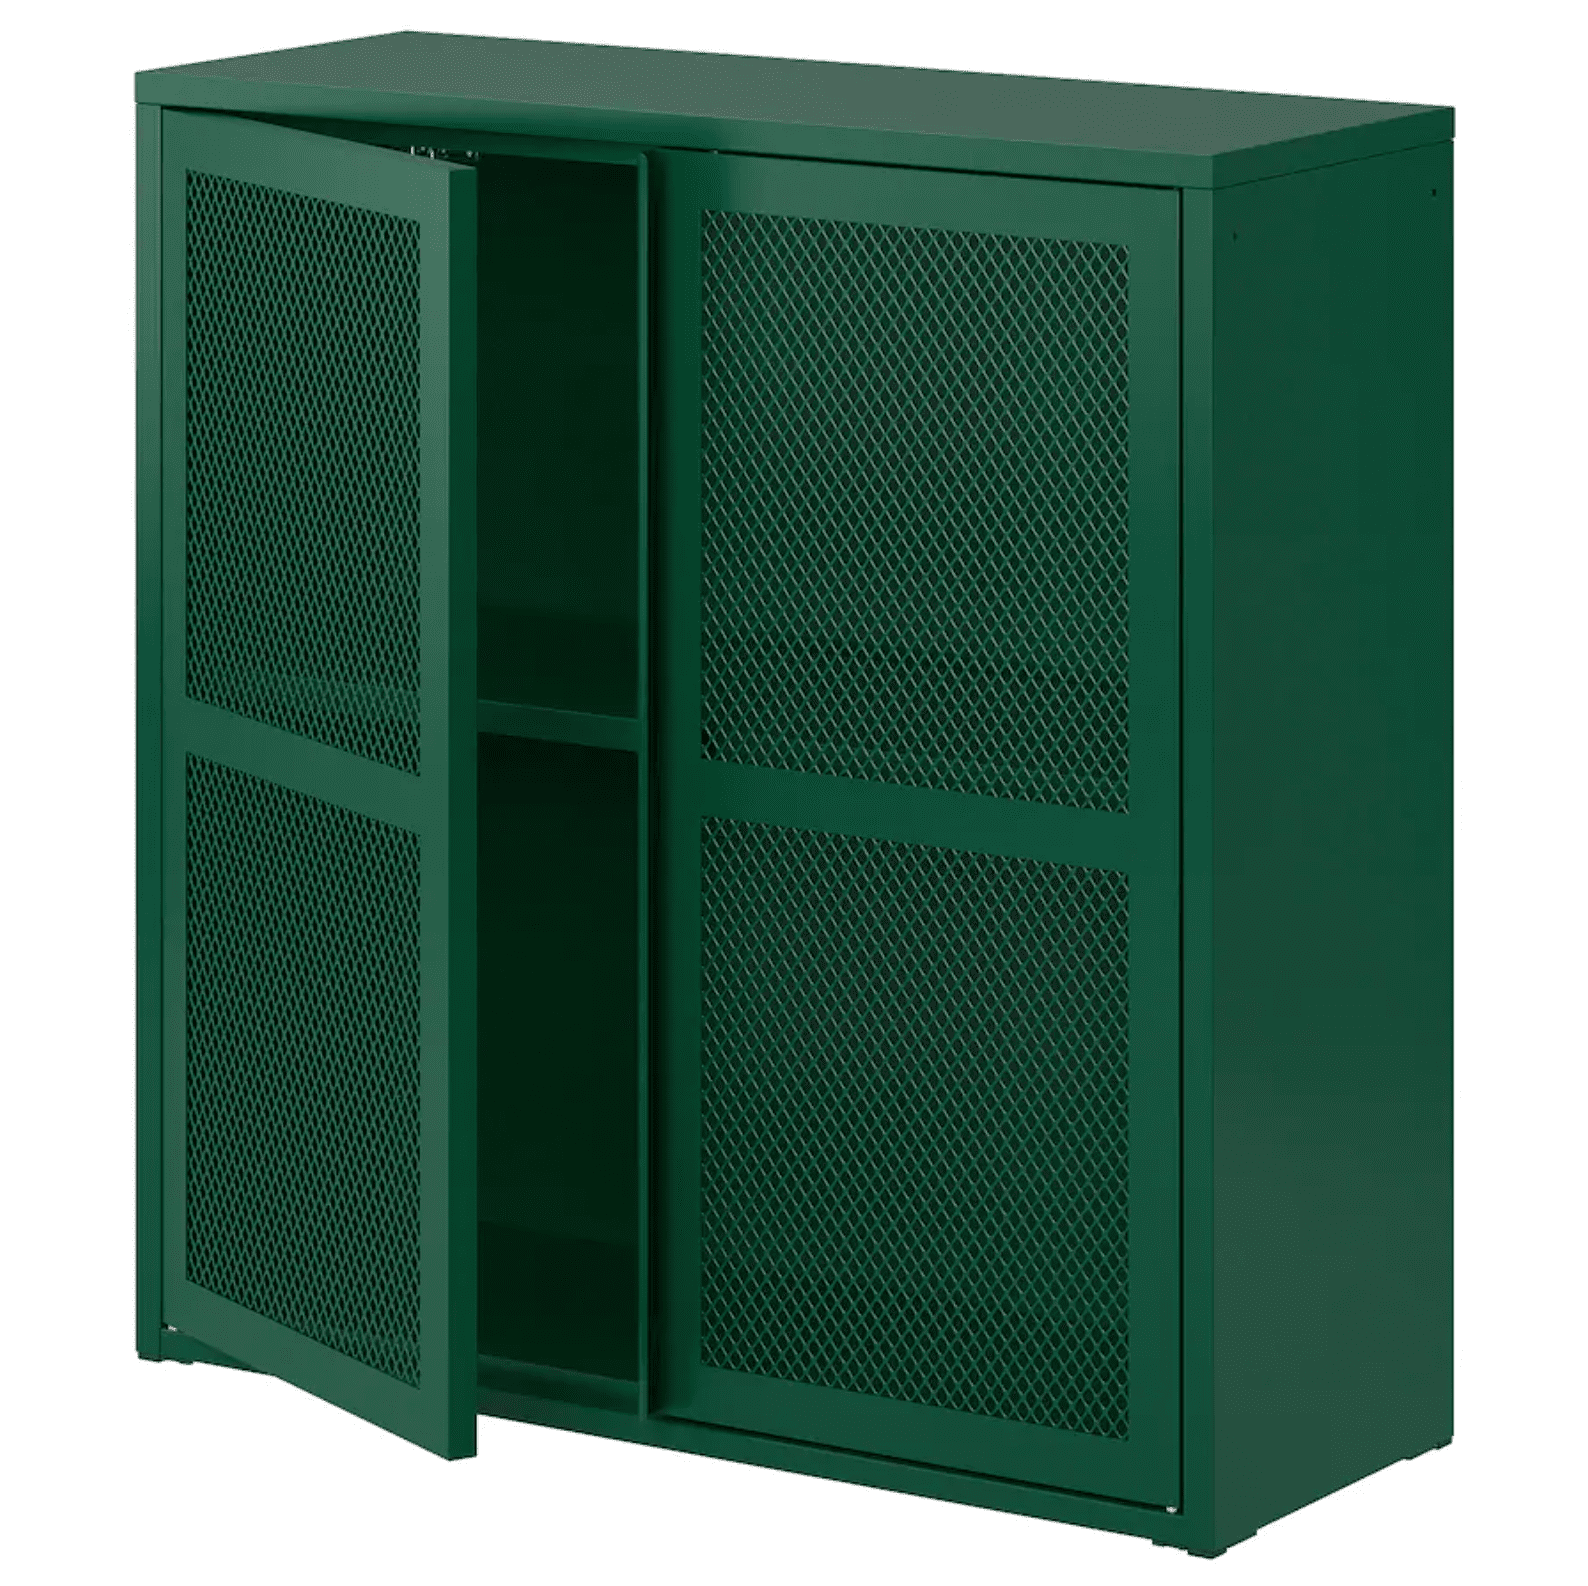 A set of mesh cabinets, rendered in bright green